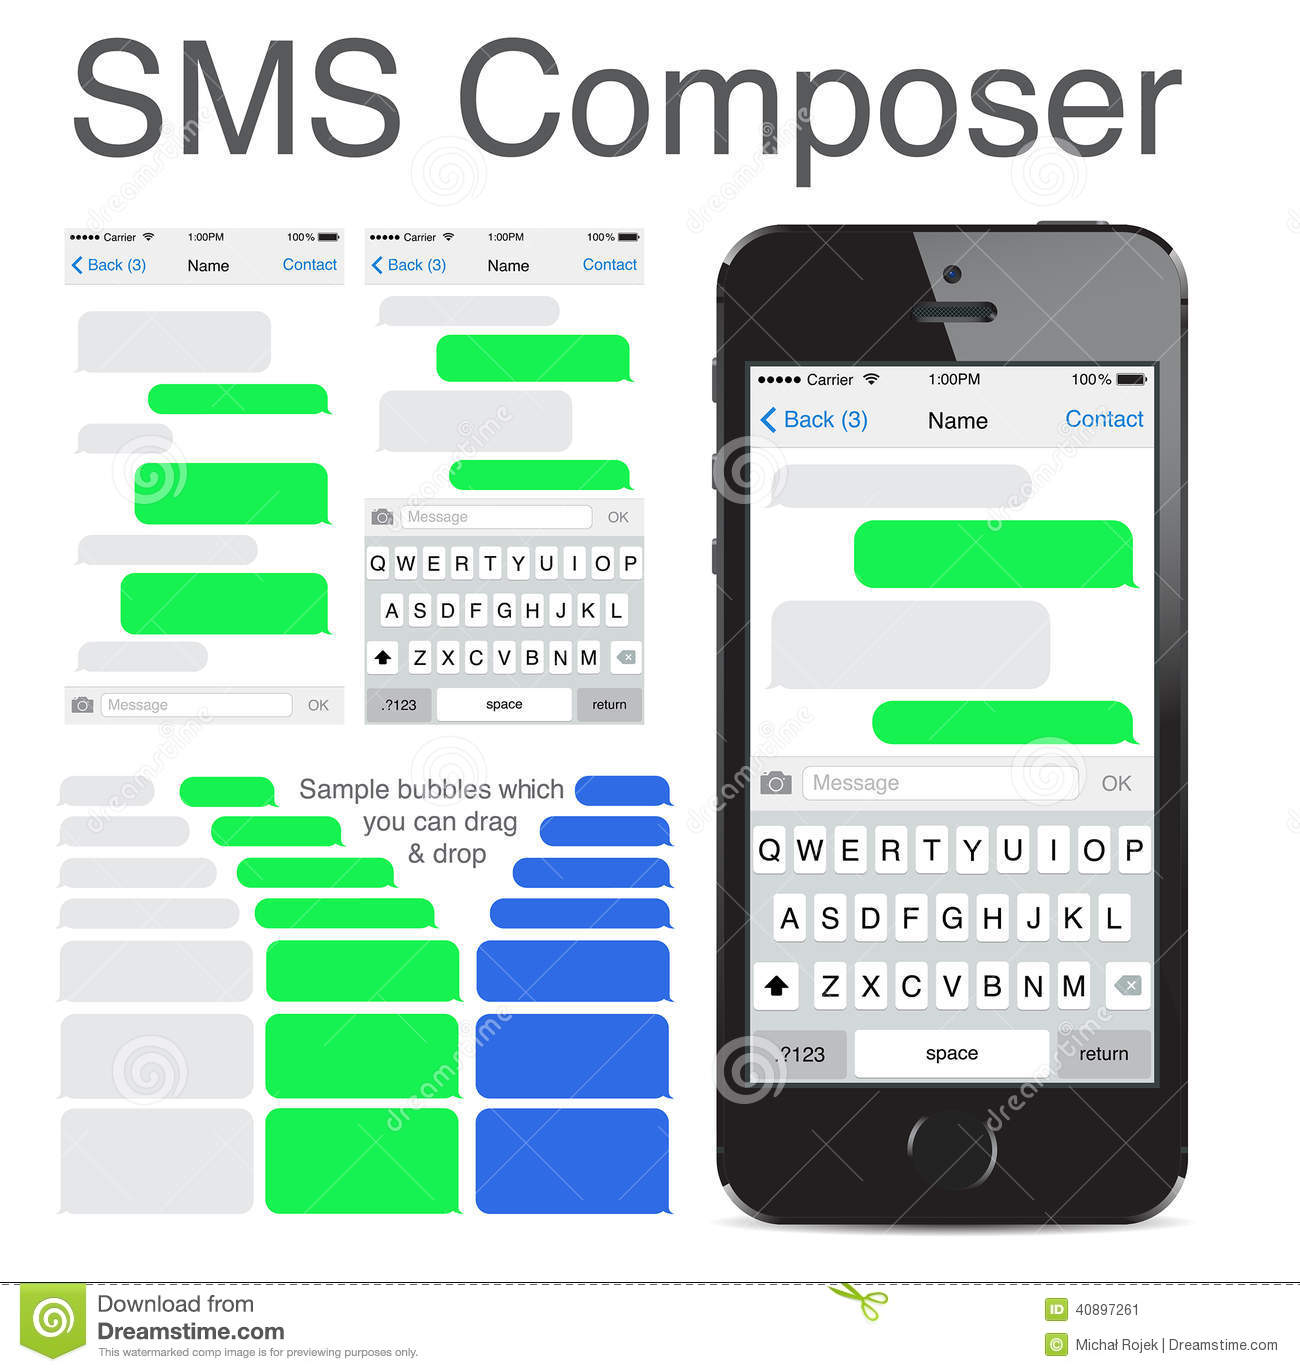 Son Sms Iphone X